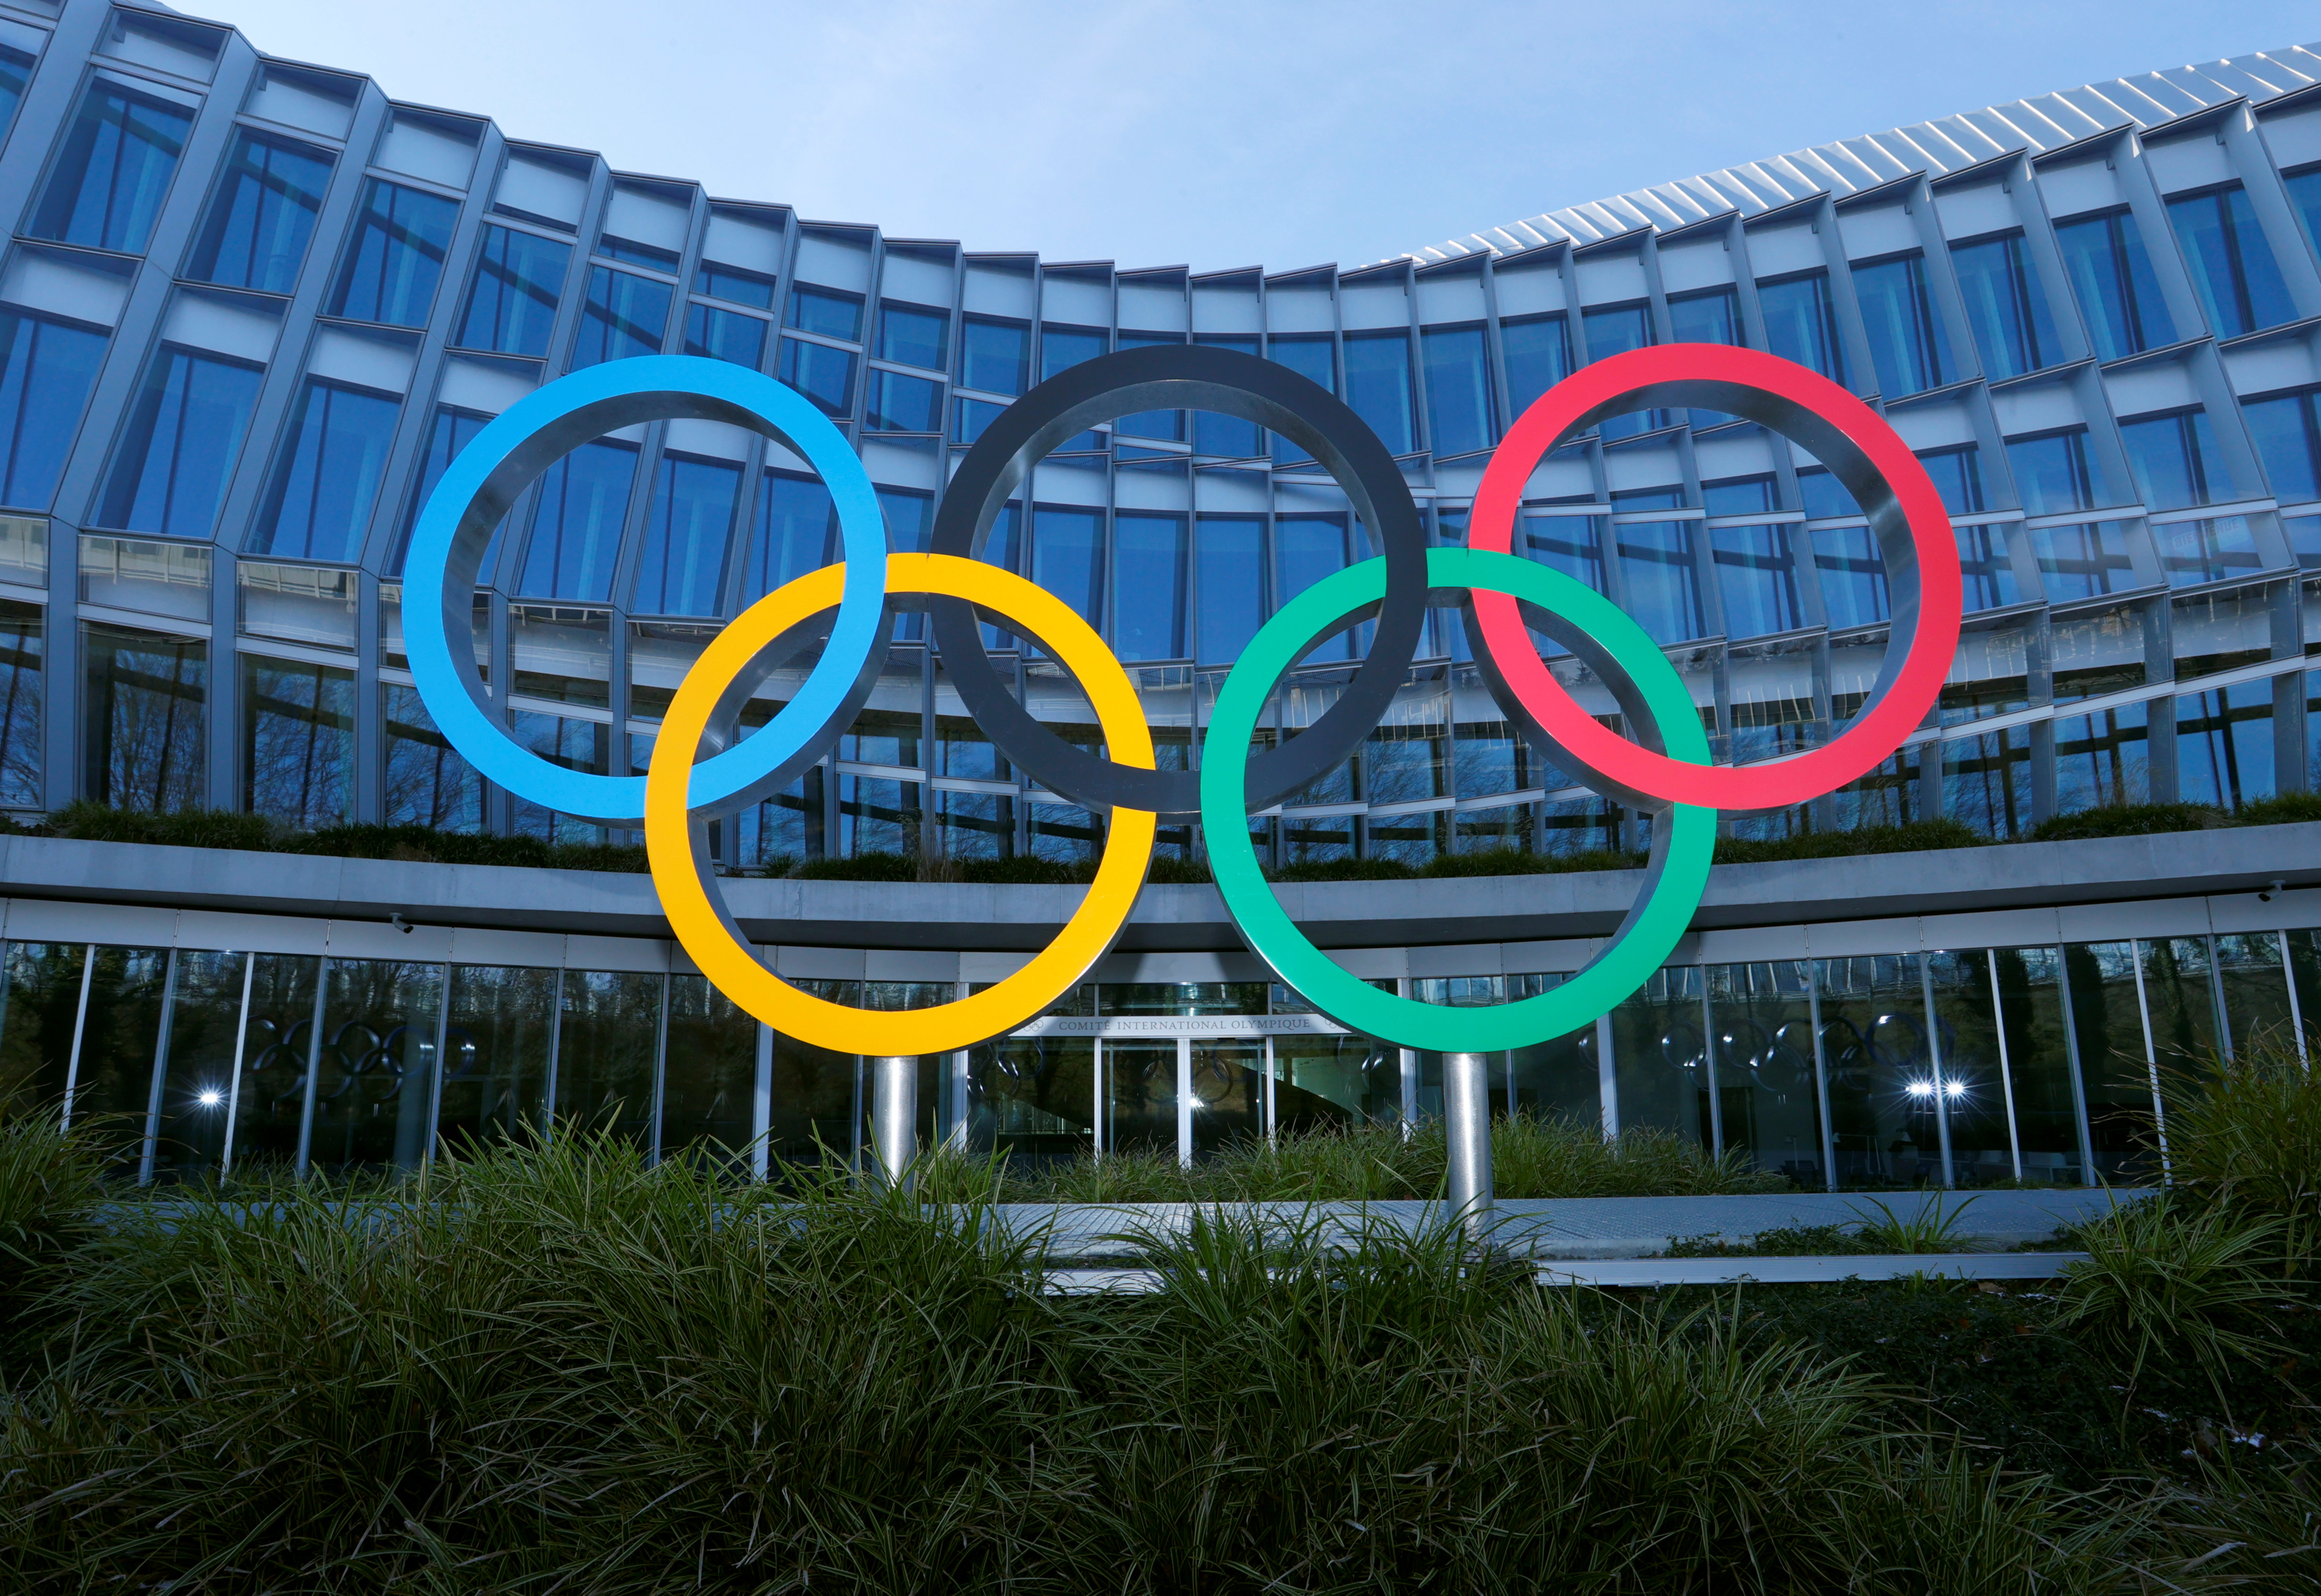 The Olympic rings are pictured in front of the International Olympic Committee (IOC) headquarters during the coronavirus disease (COVID-19) outbreak in Lausanne, Switzerland, January 26, 2021. REUTERS/Denis Balibouse/Files